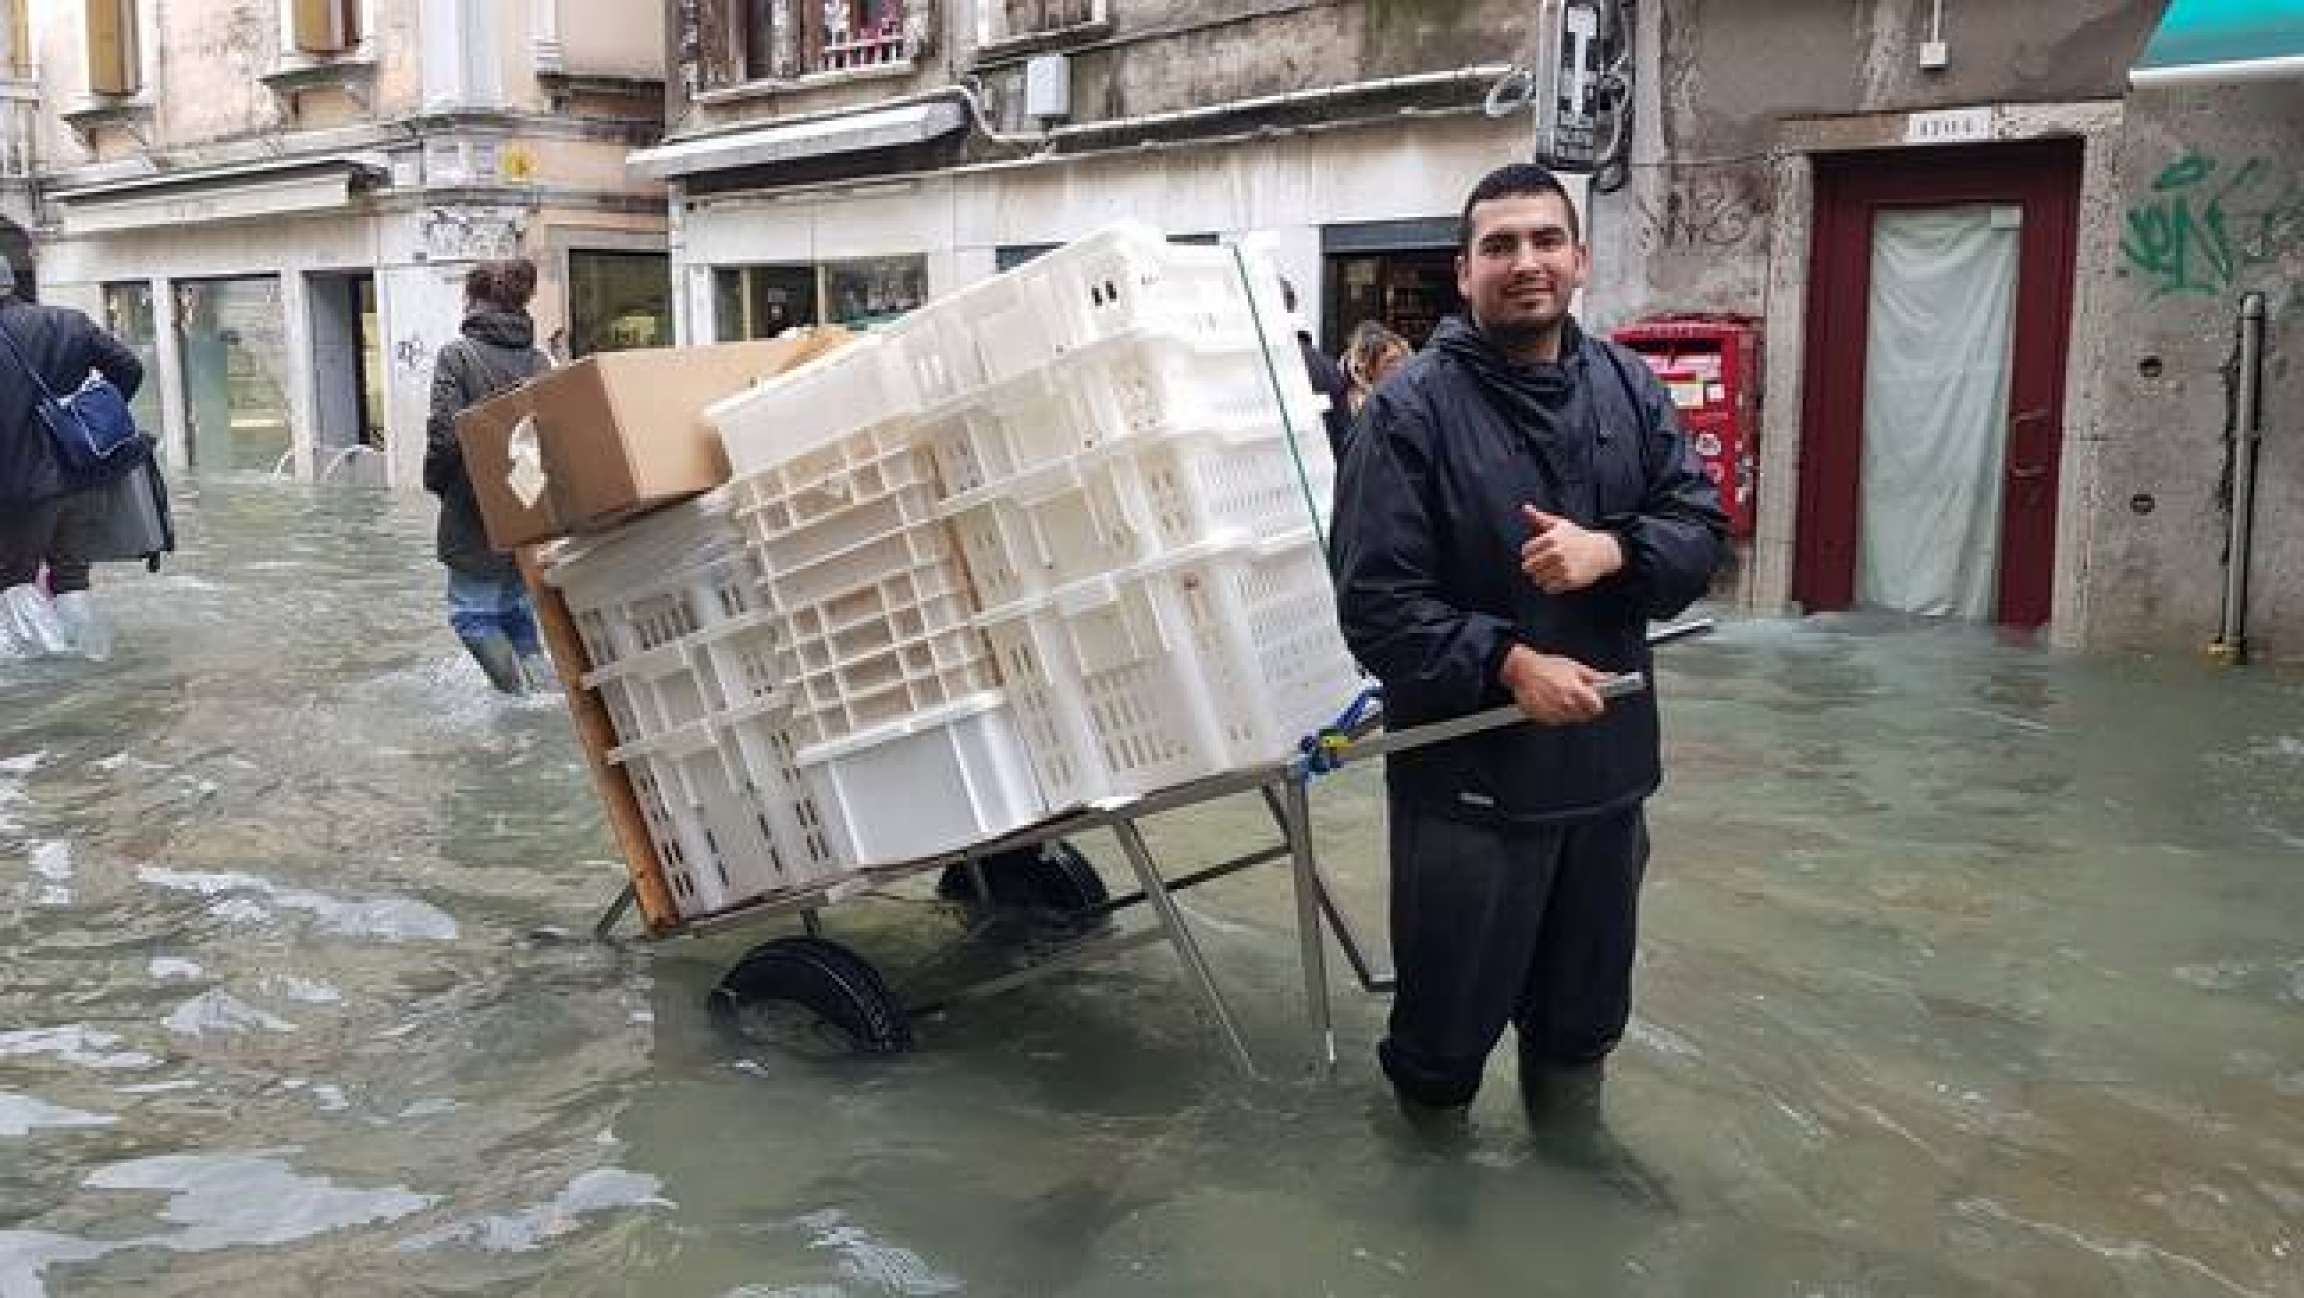 A Rizzo bakery employee delivers bread during the November 2019 floods in Venice.